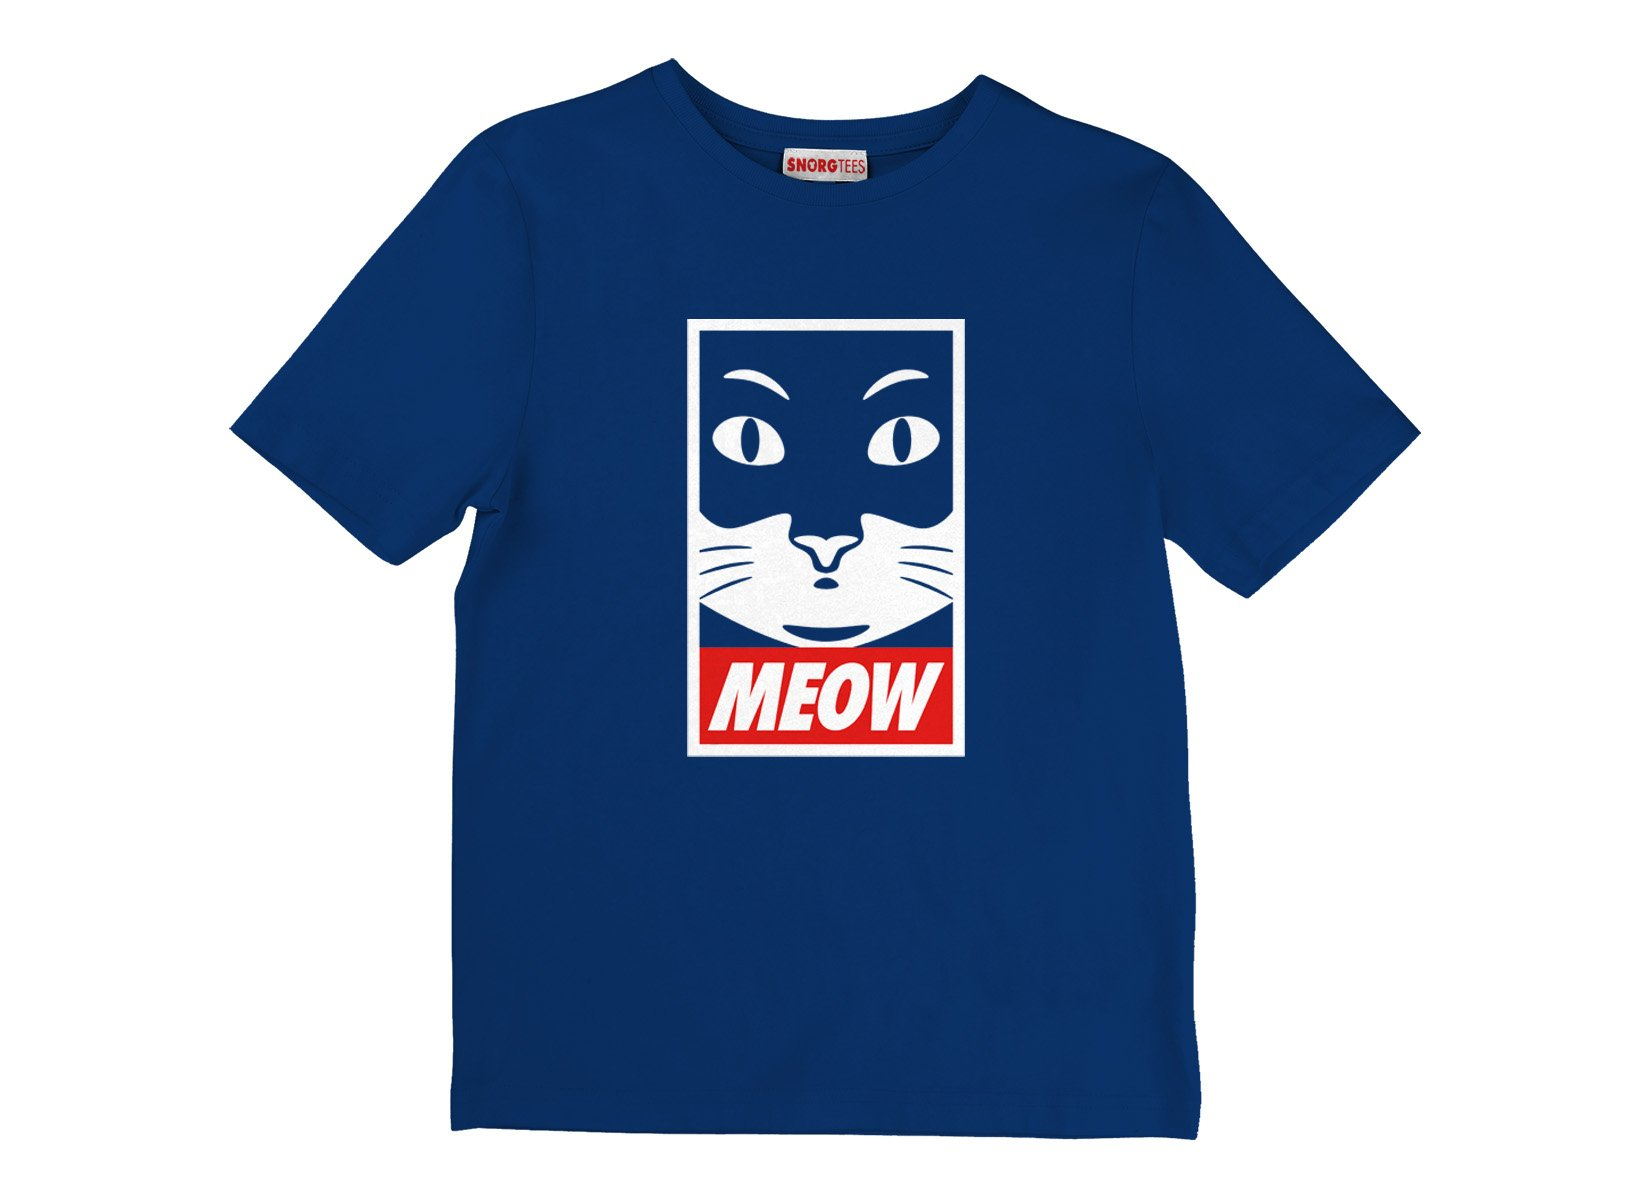 Meow on Kids T-Shirt